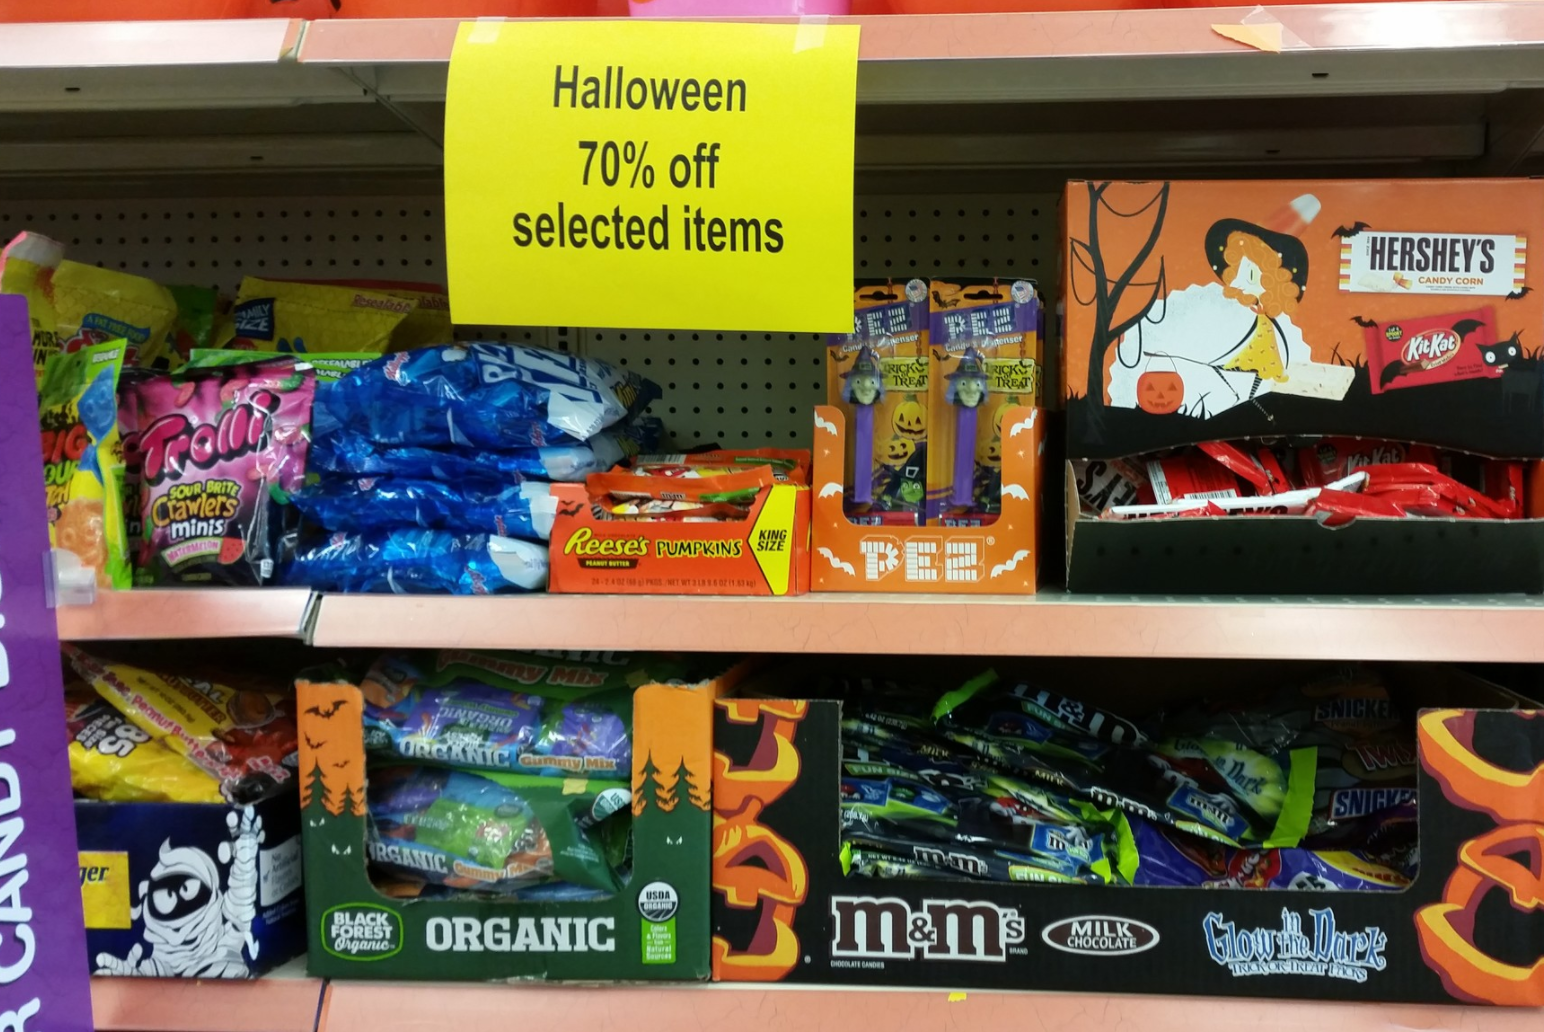 Walgreens Halloween Clearance Up to 70% Off